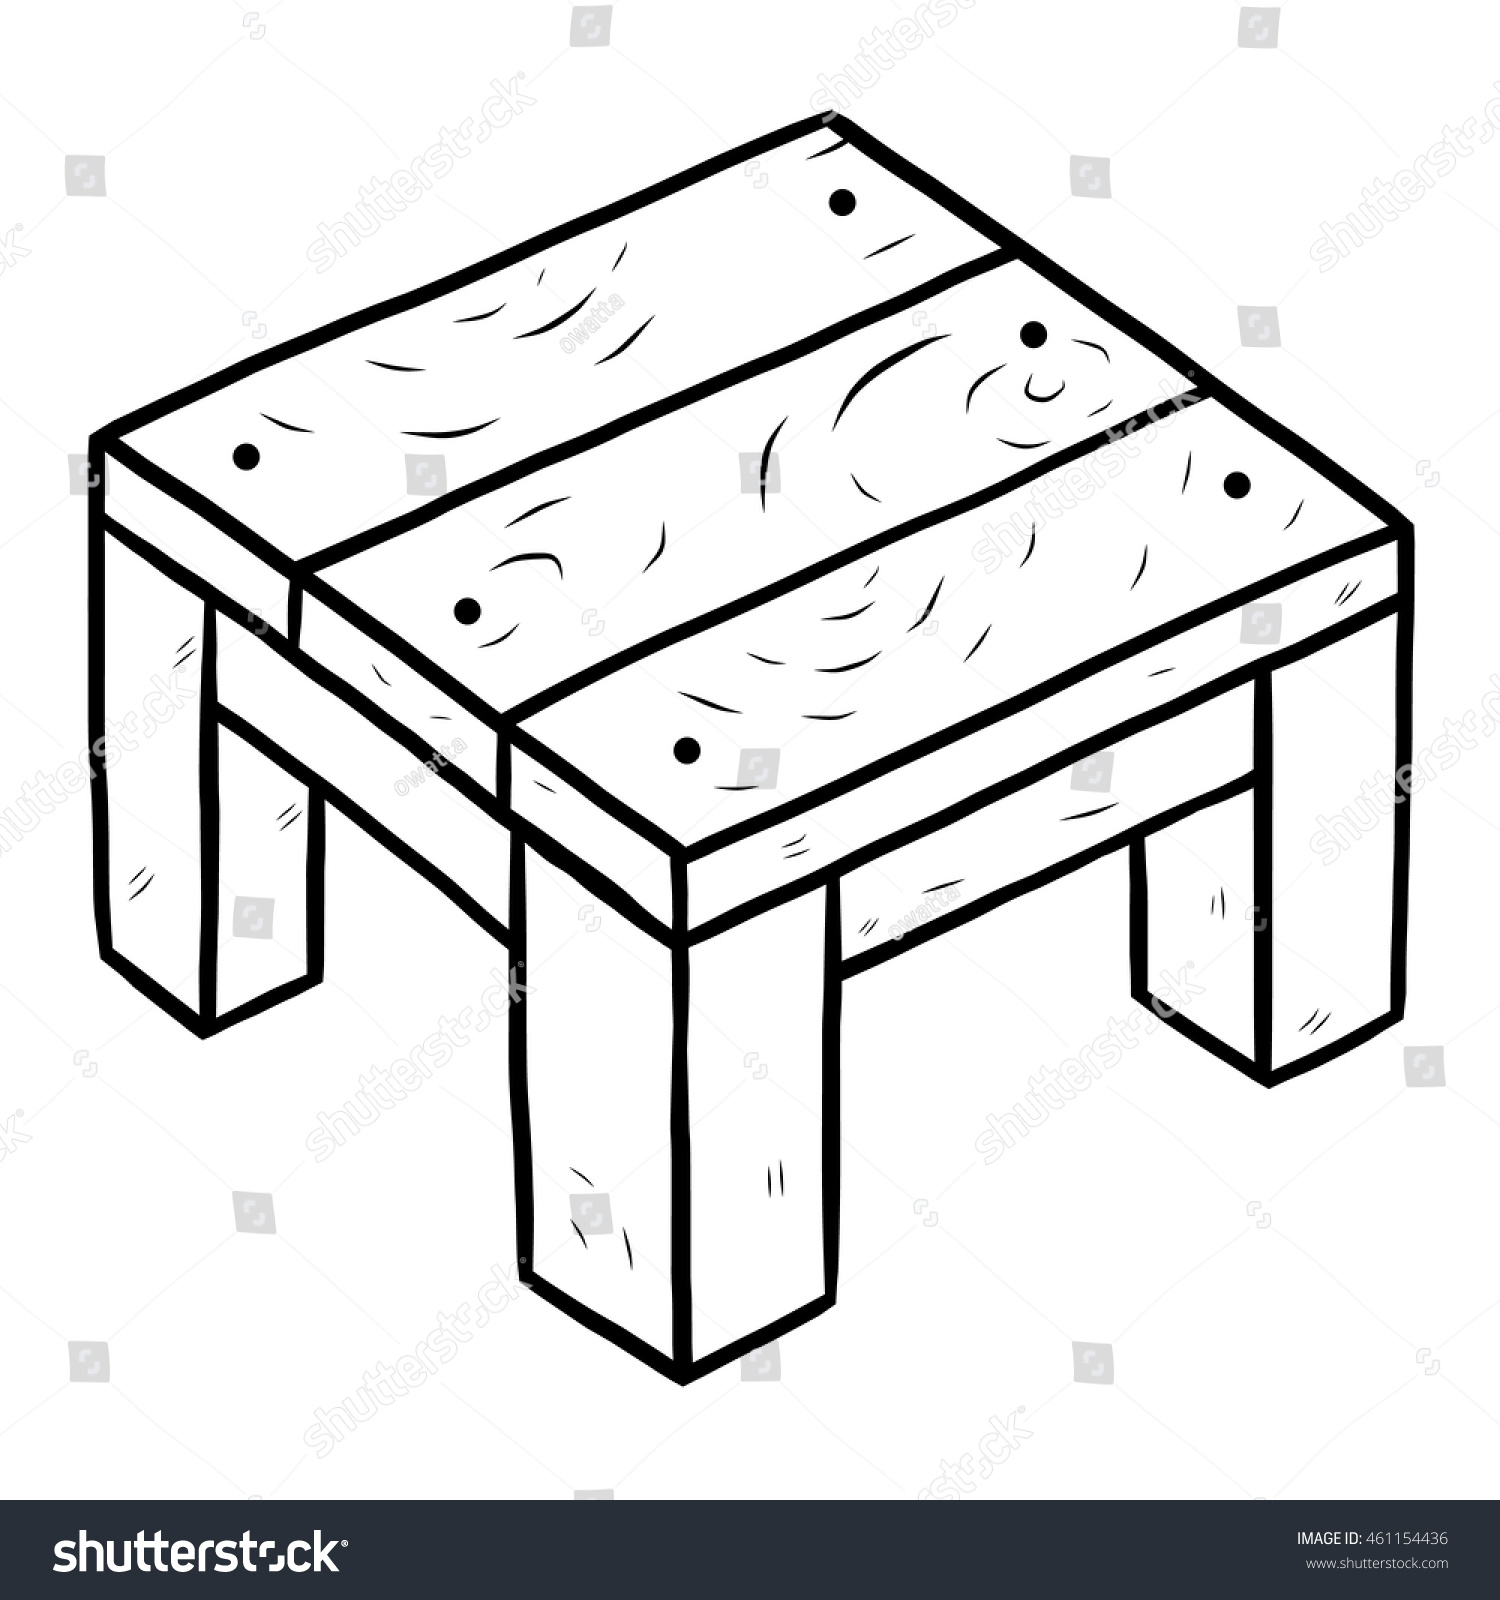 Black and white chair drawing - Small Chair Cartoon Vector And Illustration Black And White Hand Drawn Sketch